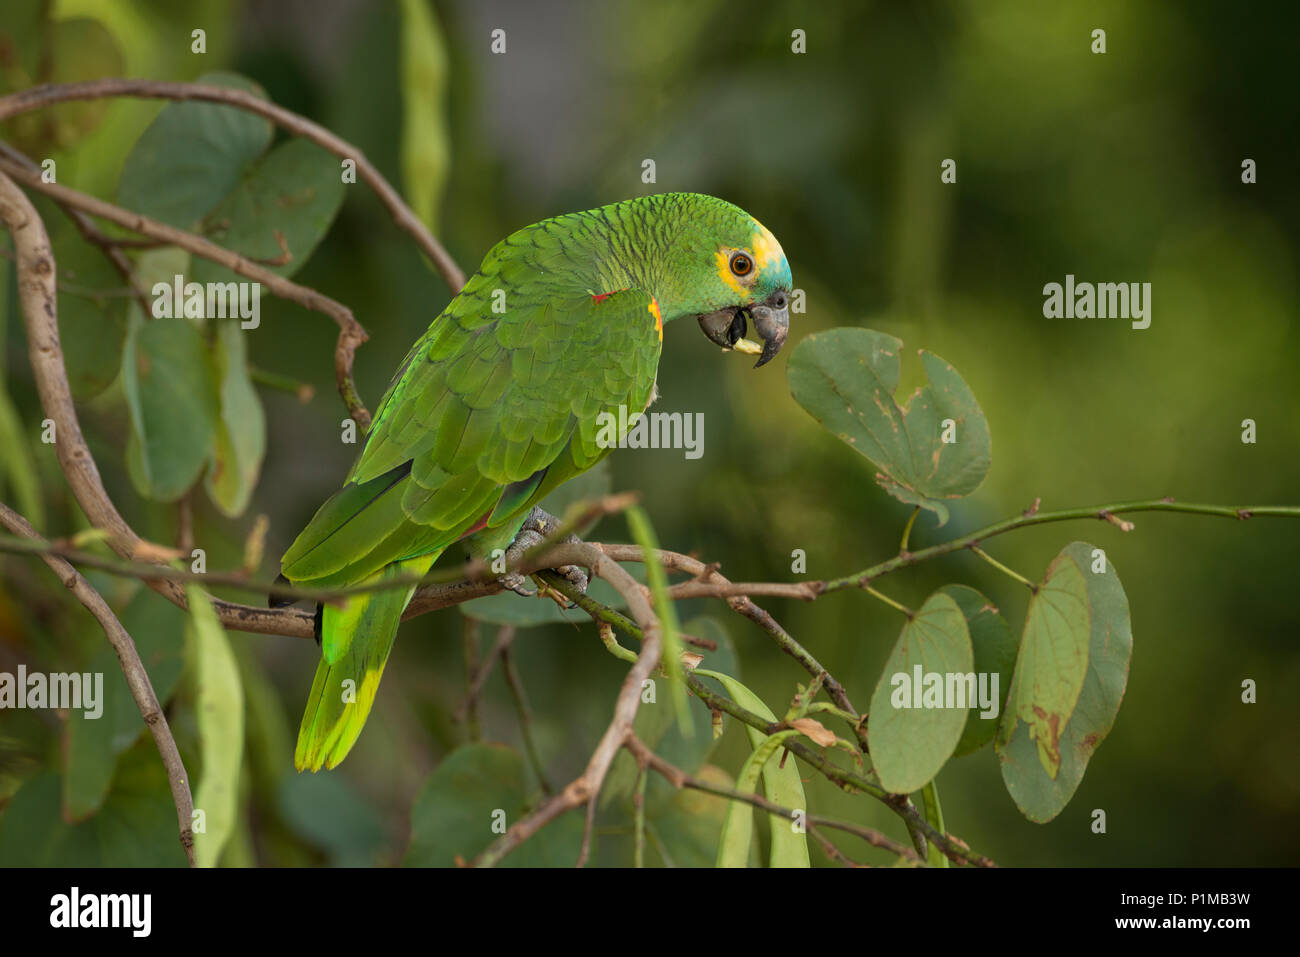 Blue-fronted Parrot (Amazona aestiva) from Central Brazil - Stock Image